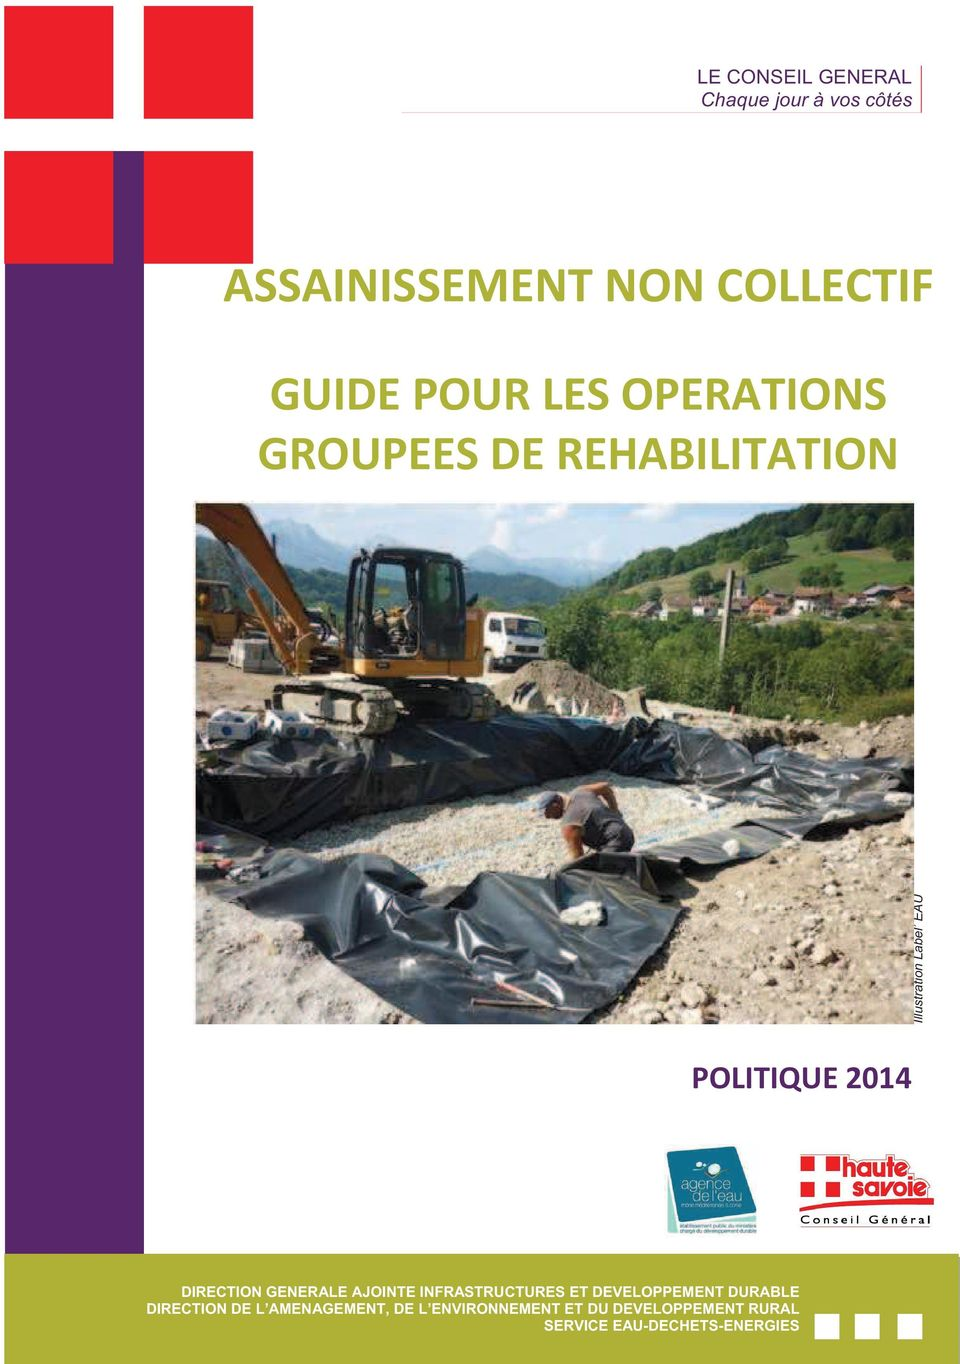 DEVELOPPEMENT DURABLE DIRECTION DE L AMENAGEMENT, DE L